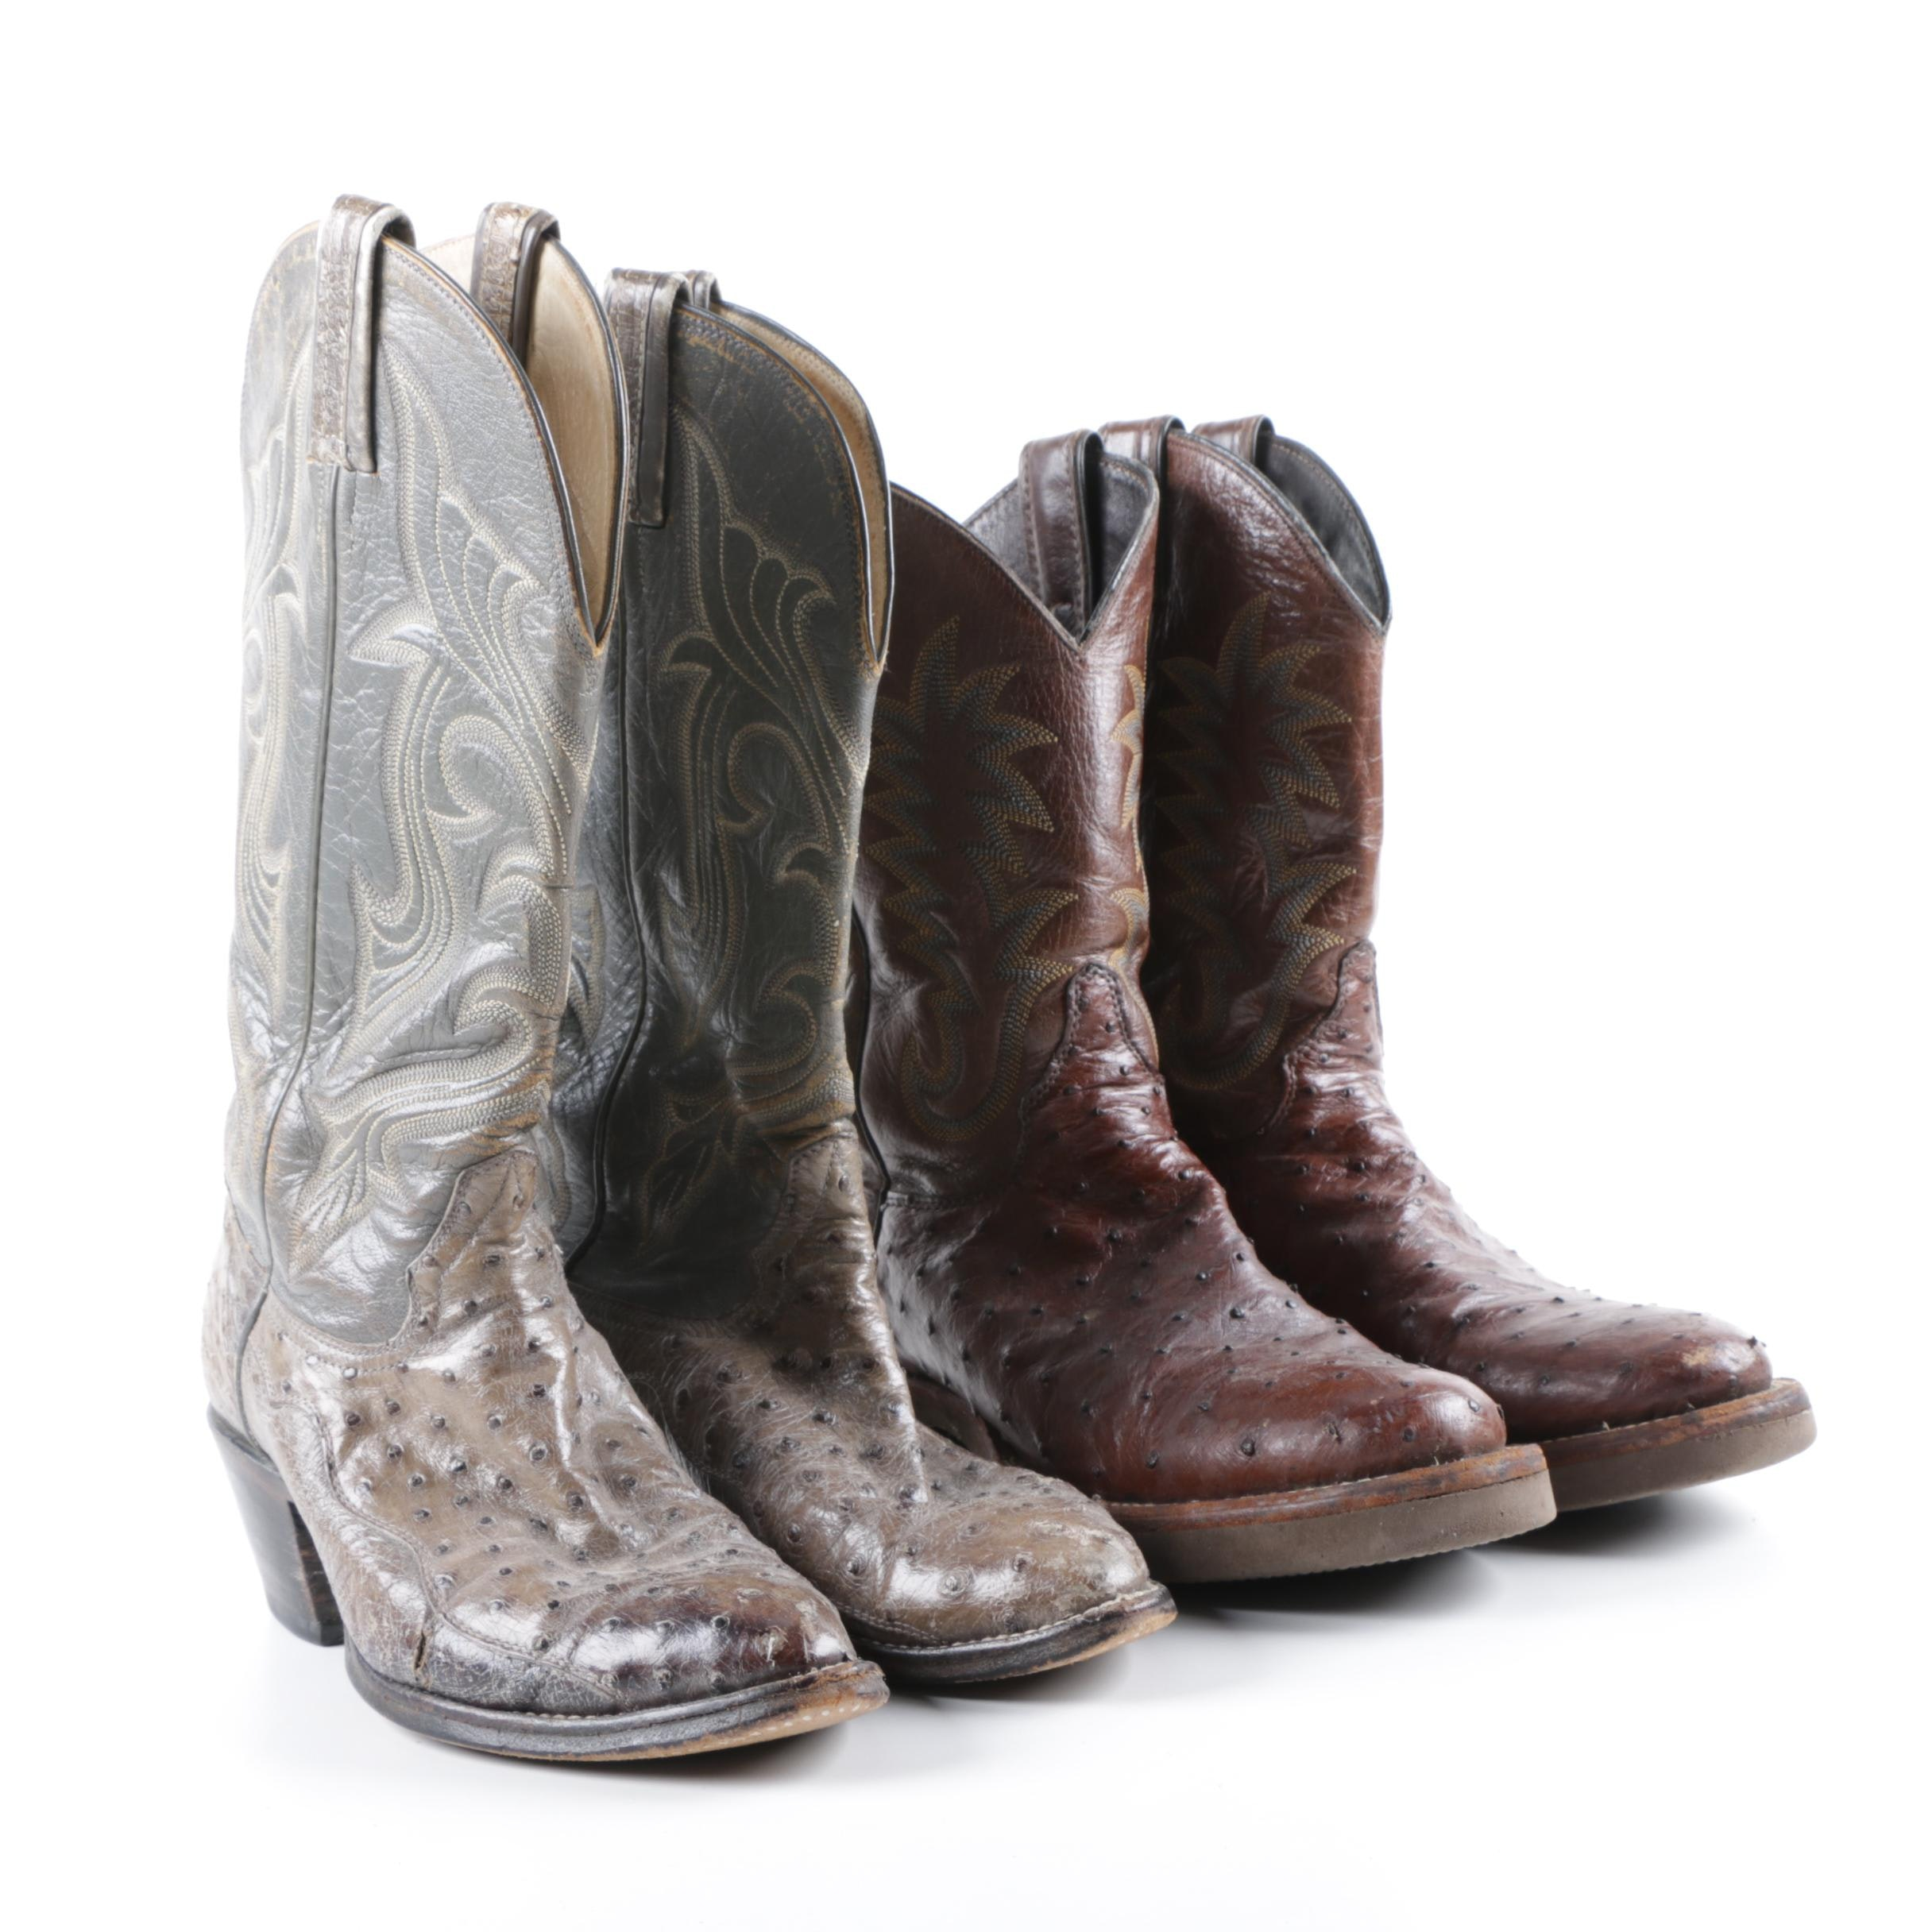 Men's Vintage Hondo Boots and Justin Ostrich and Leather Cowboy Boots